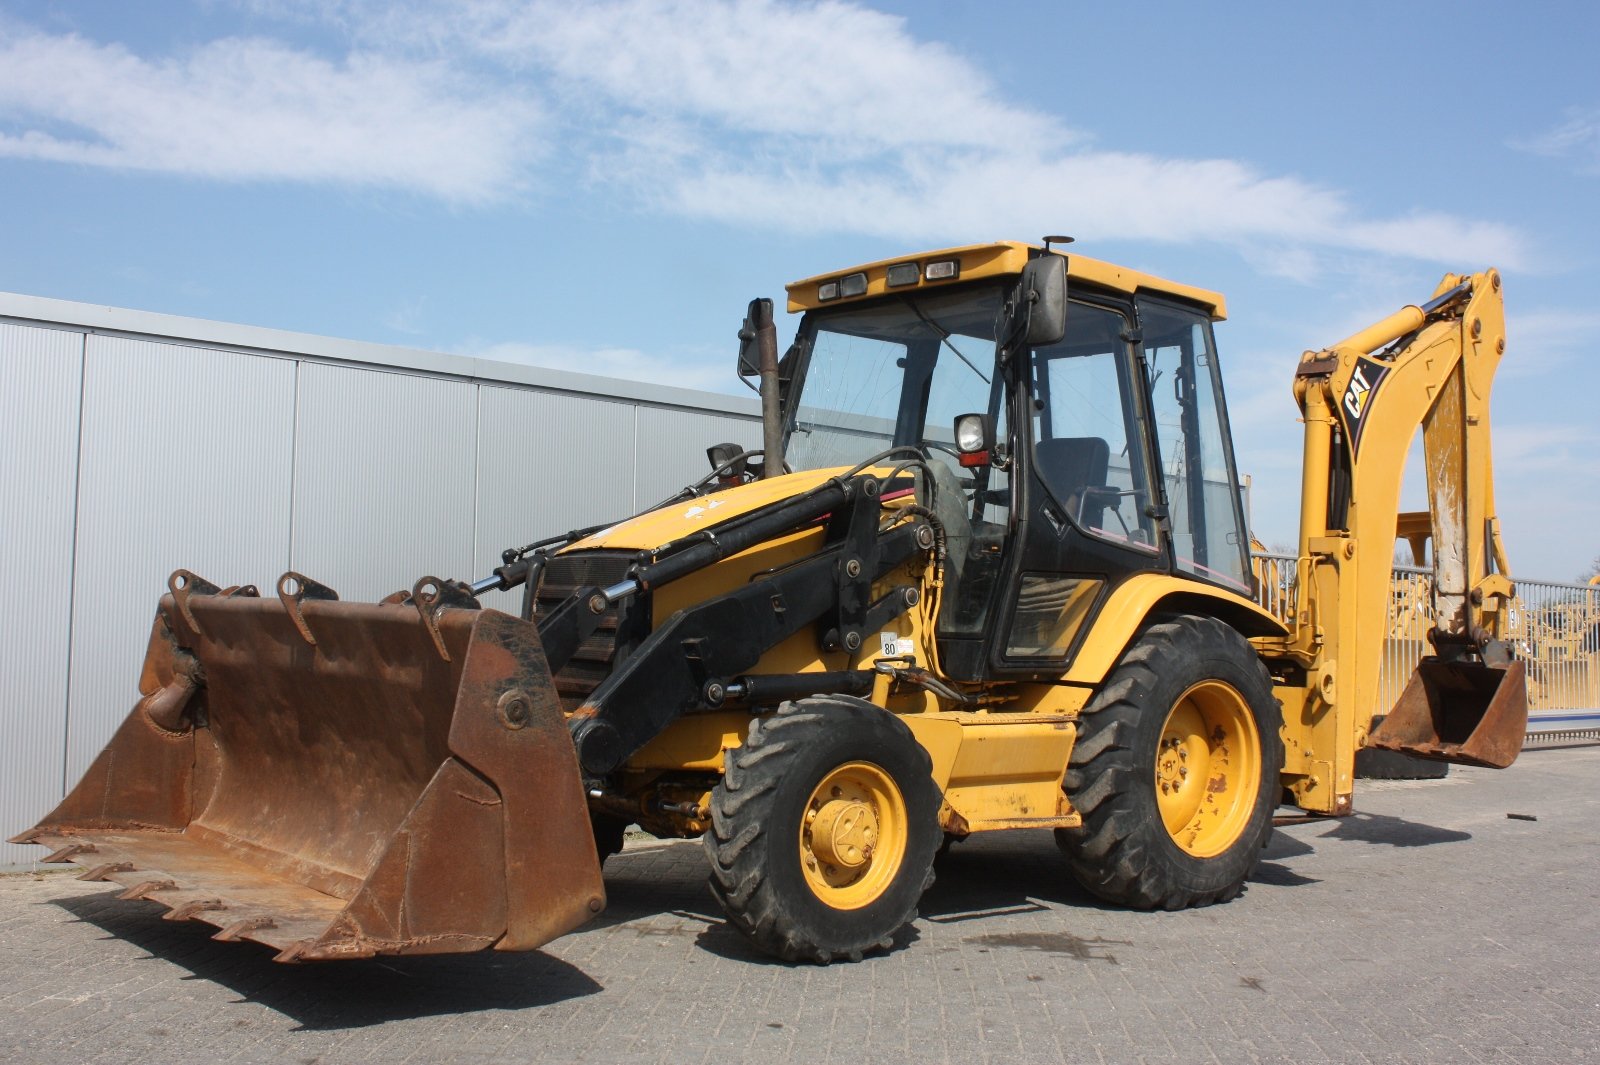 CATERPILLAR 428C 1997 Loader Backhoe | Van Dijk Heavy ...